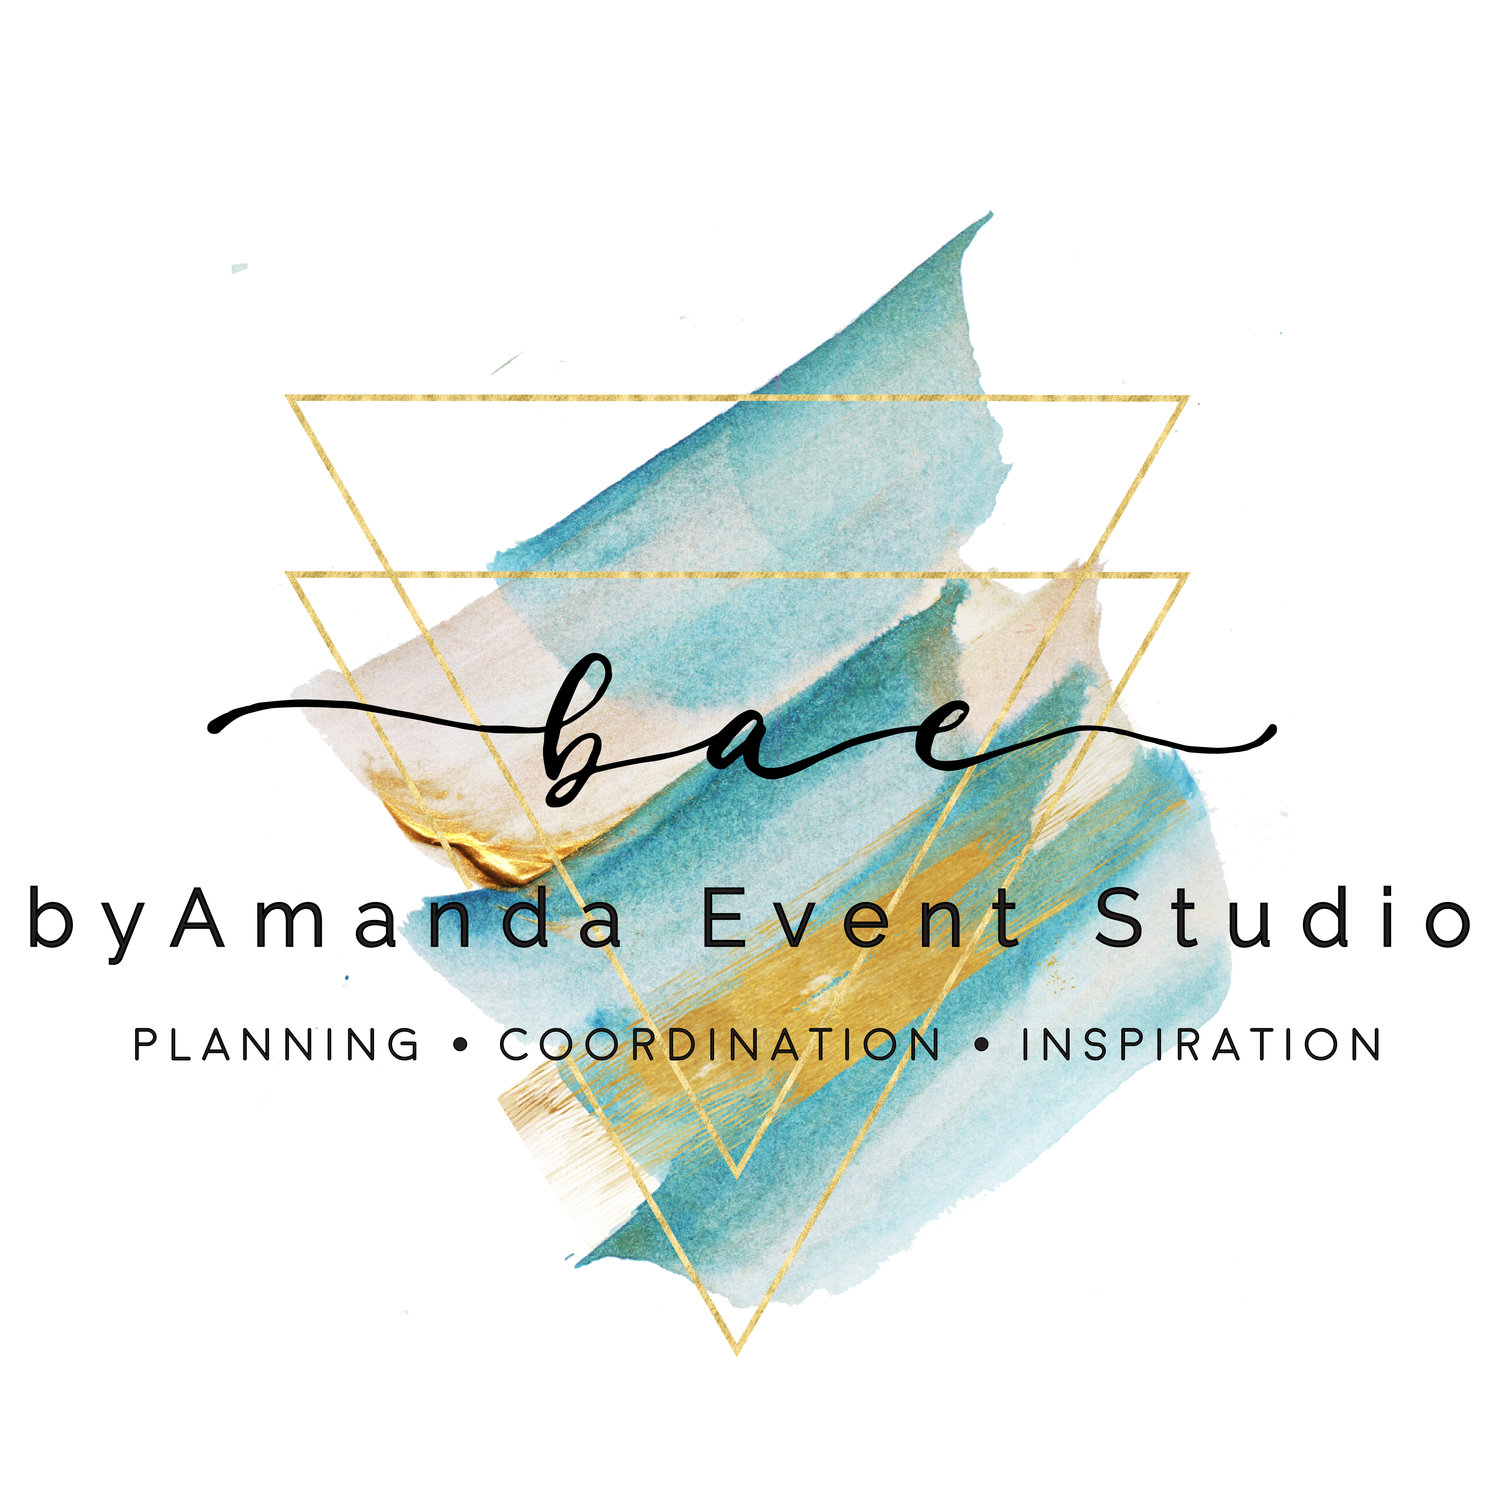 byAmanda Event Studio